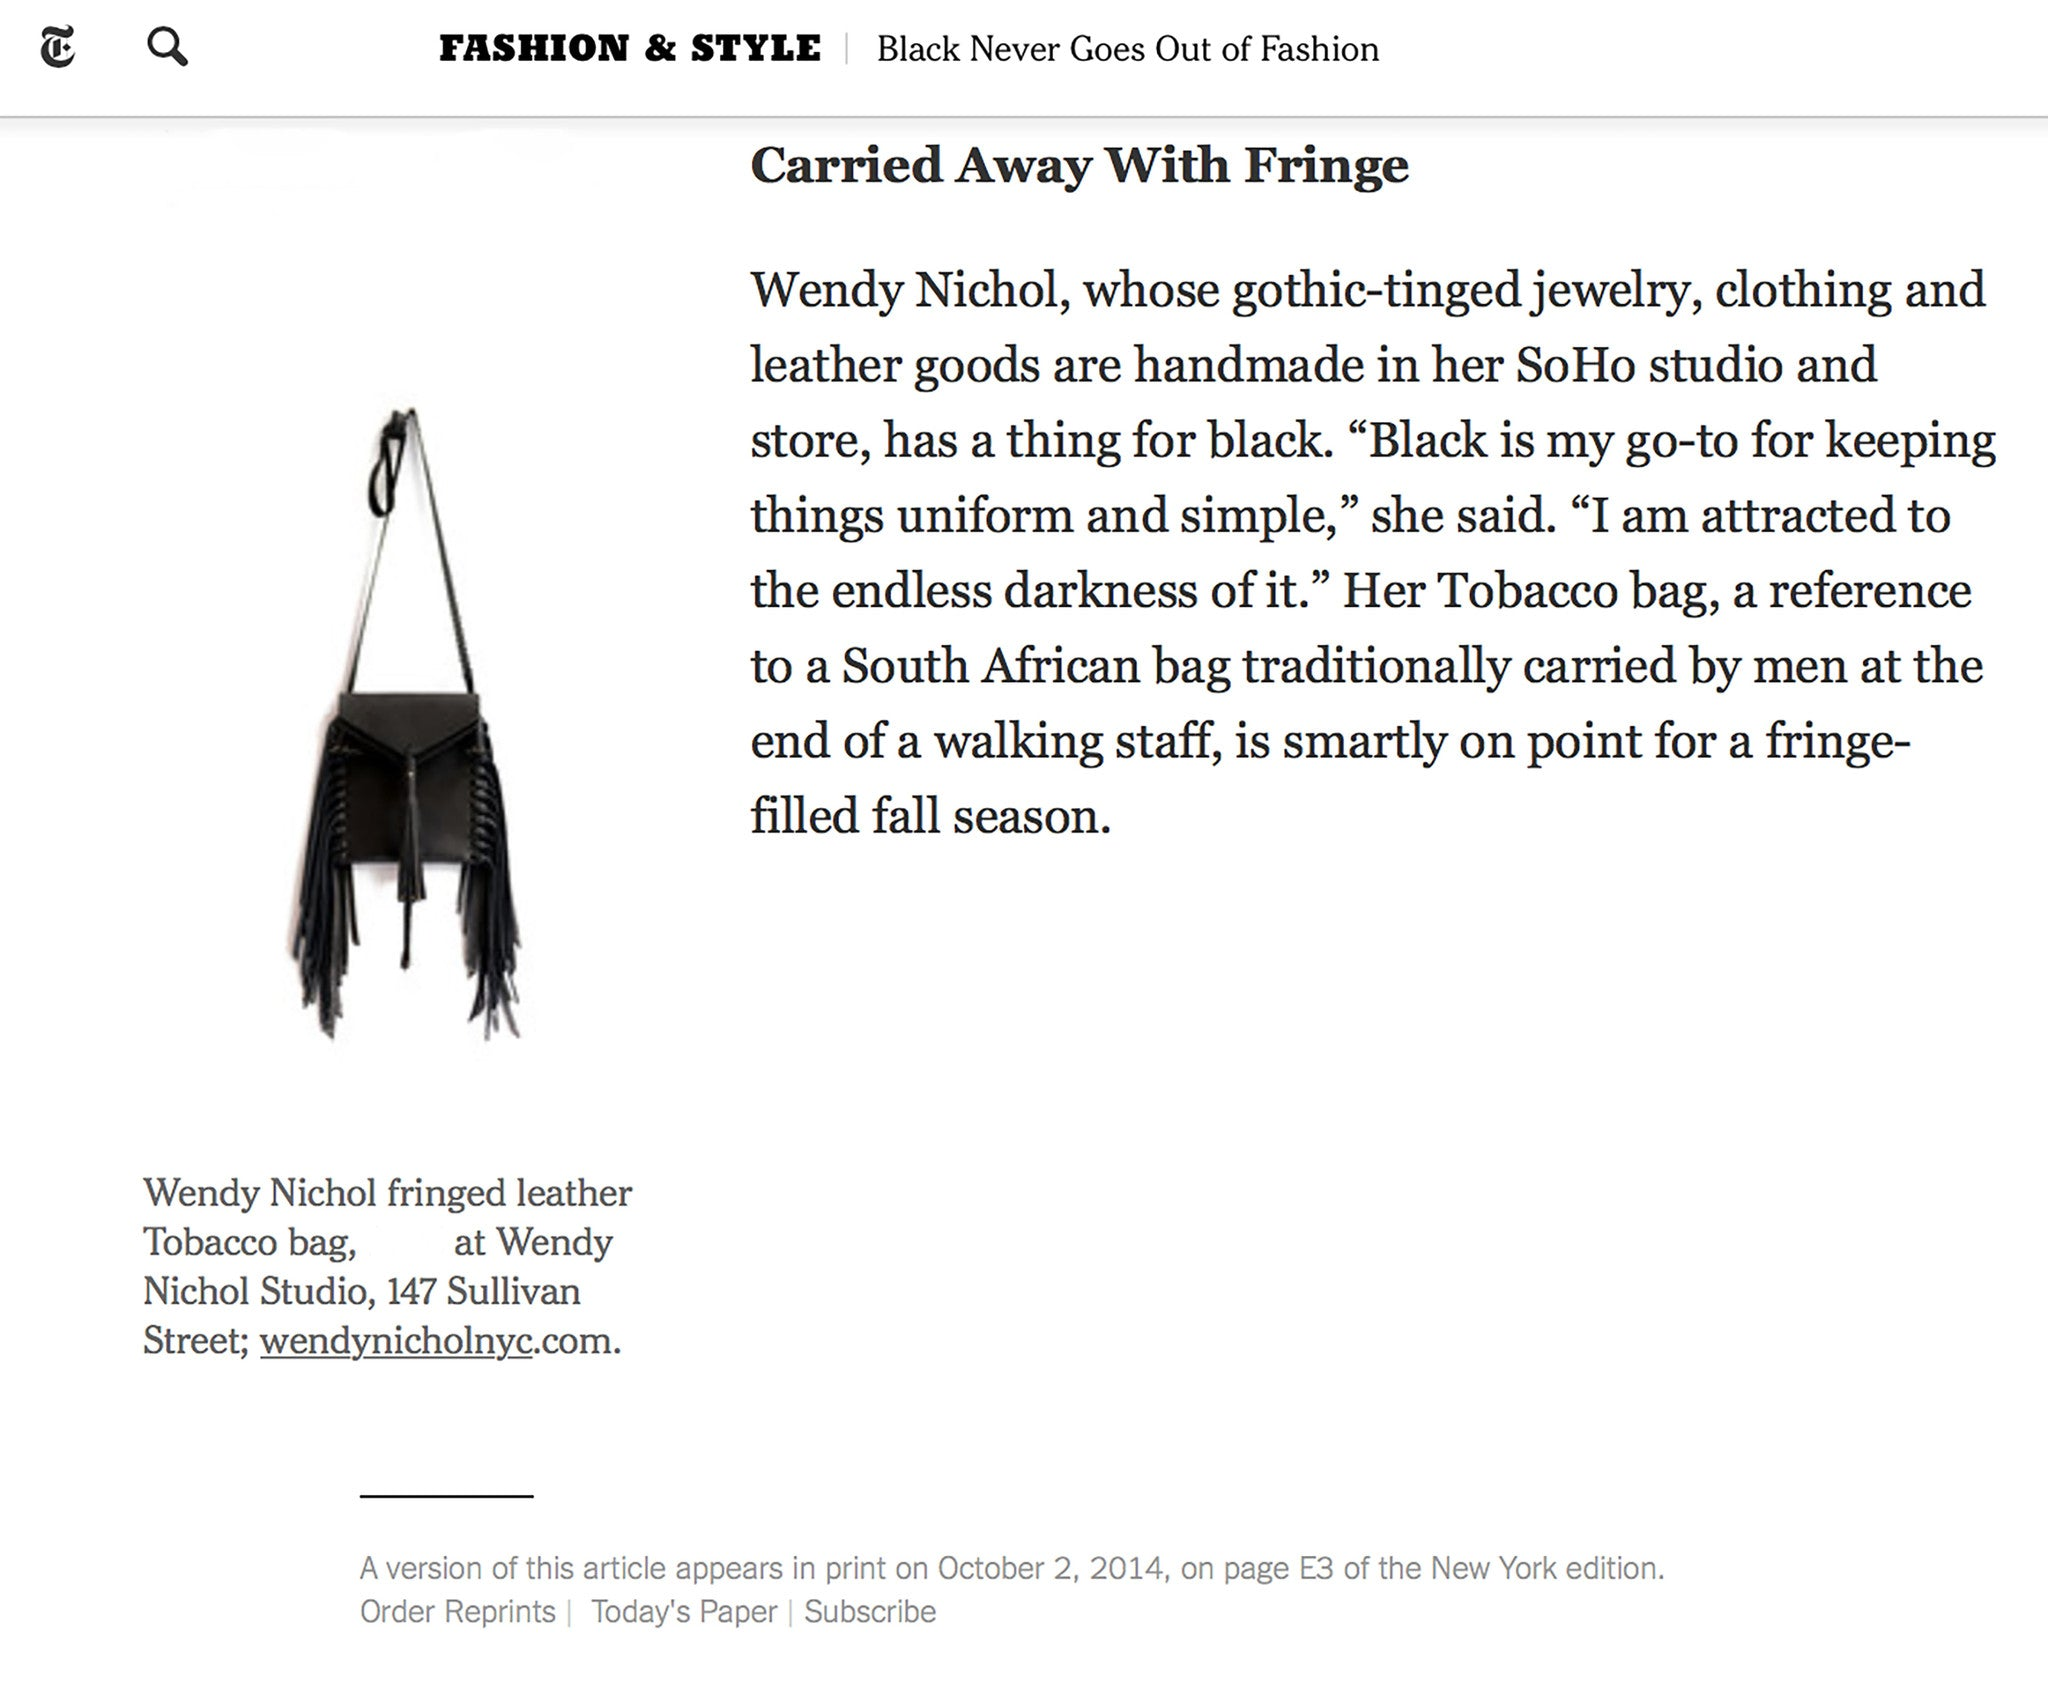 New York Times Fashion & Style Wendy Nichol Designer Tobacco Black Leather Fringe Handbag  Handmade in NYC Erica Blumenthal October 2014